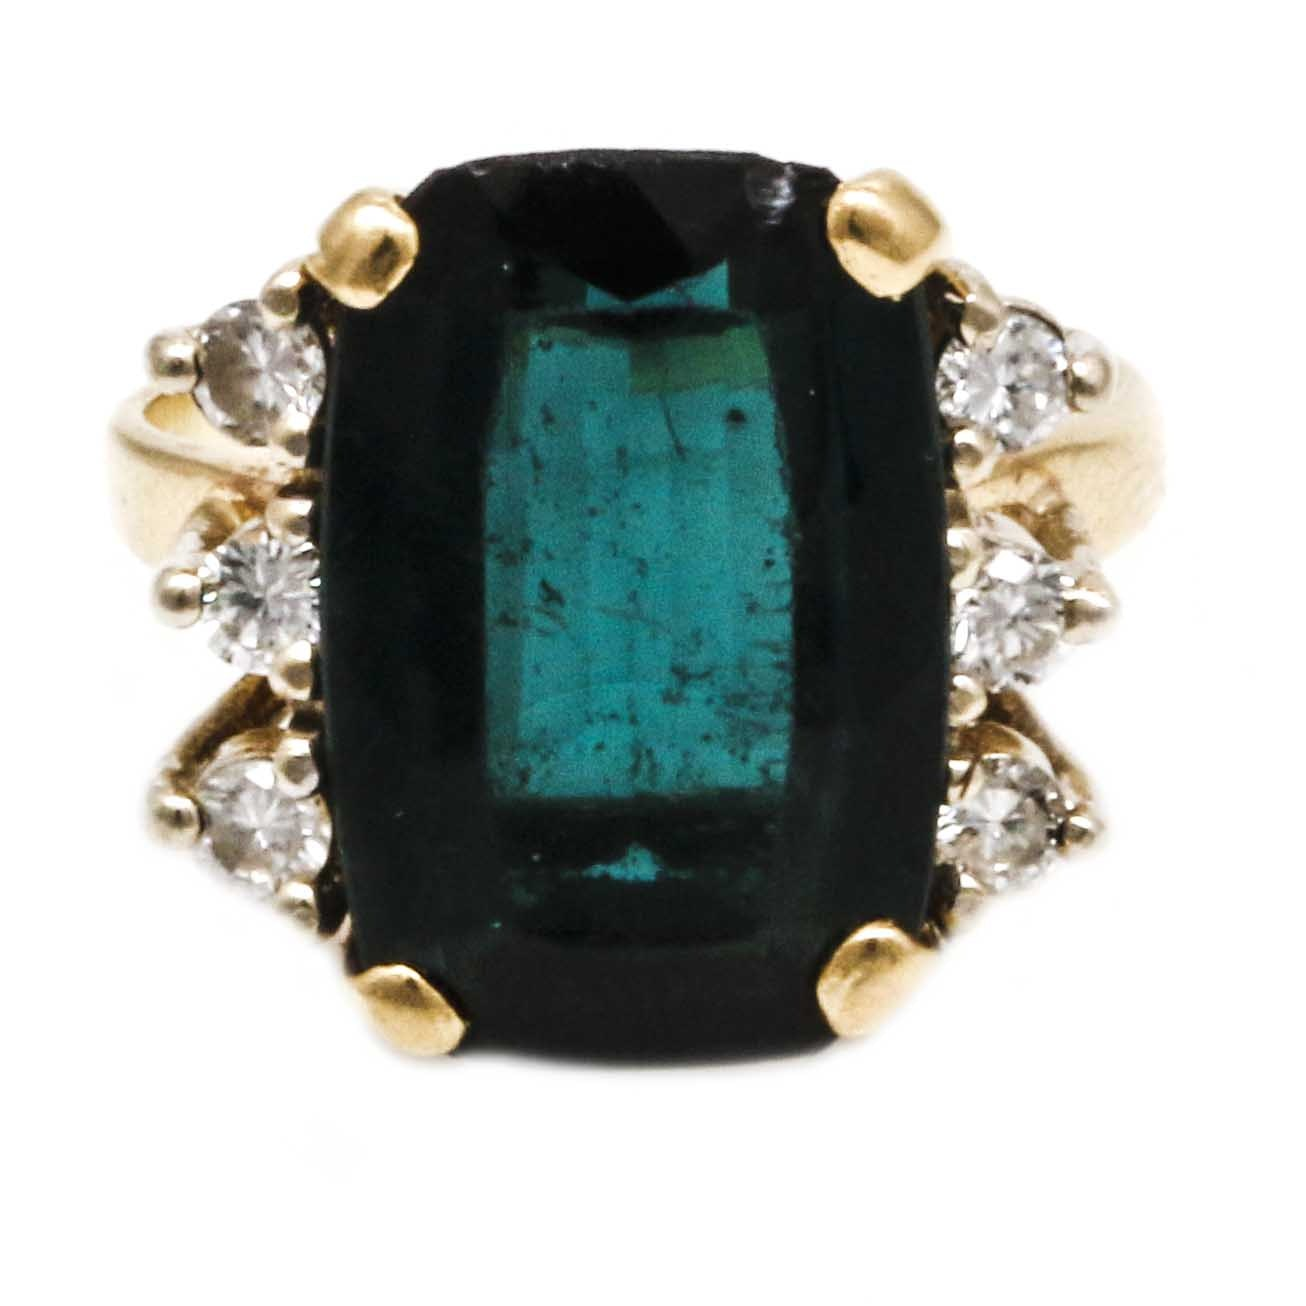 14K Yellow Gold 5.22 CTS Tourmaline Ring With Diamond Accents